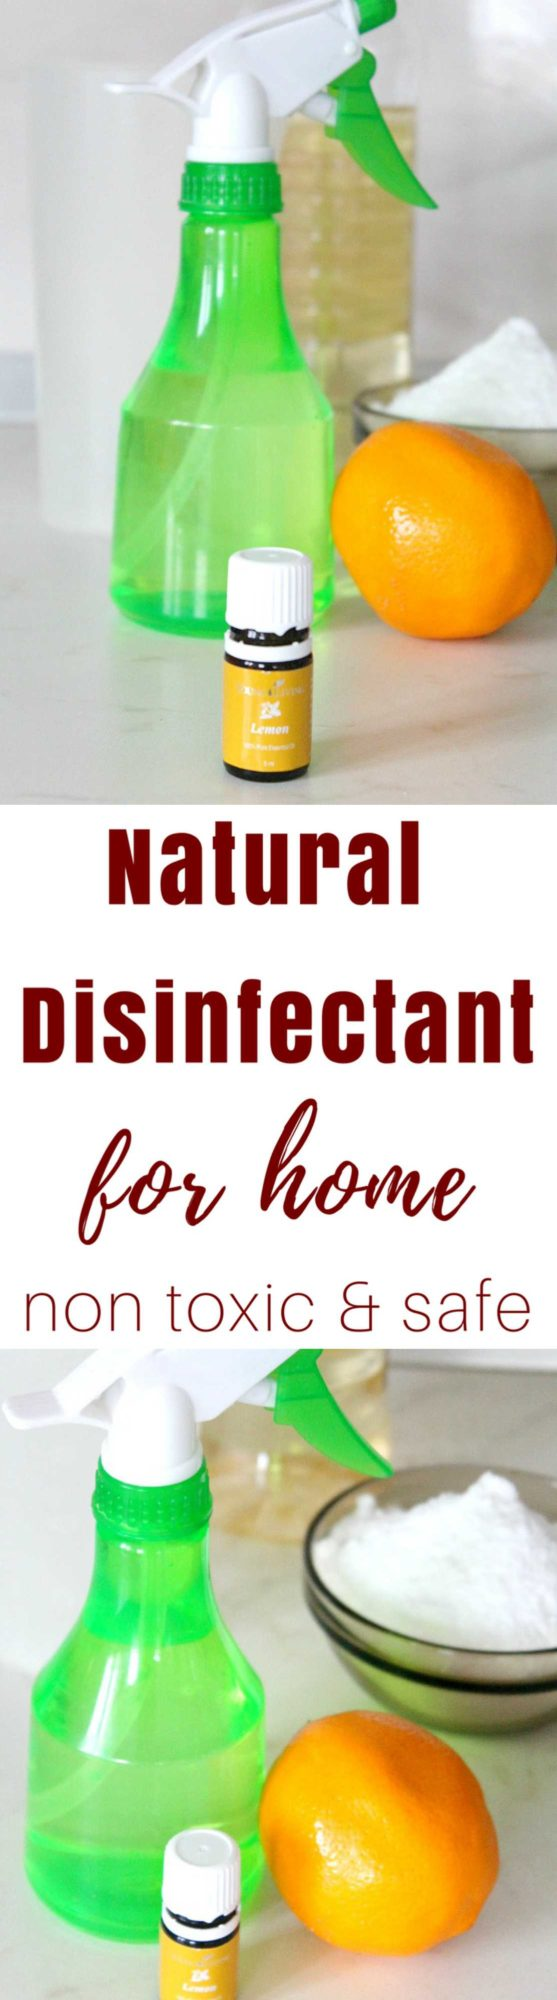 Natural disinfectant